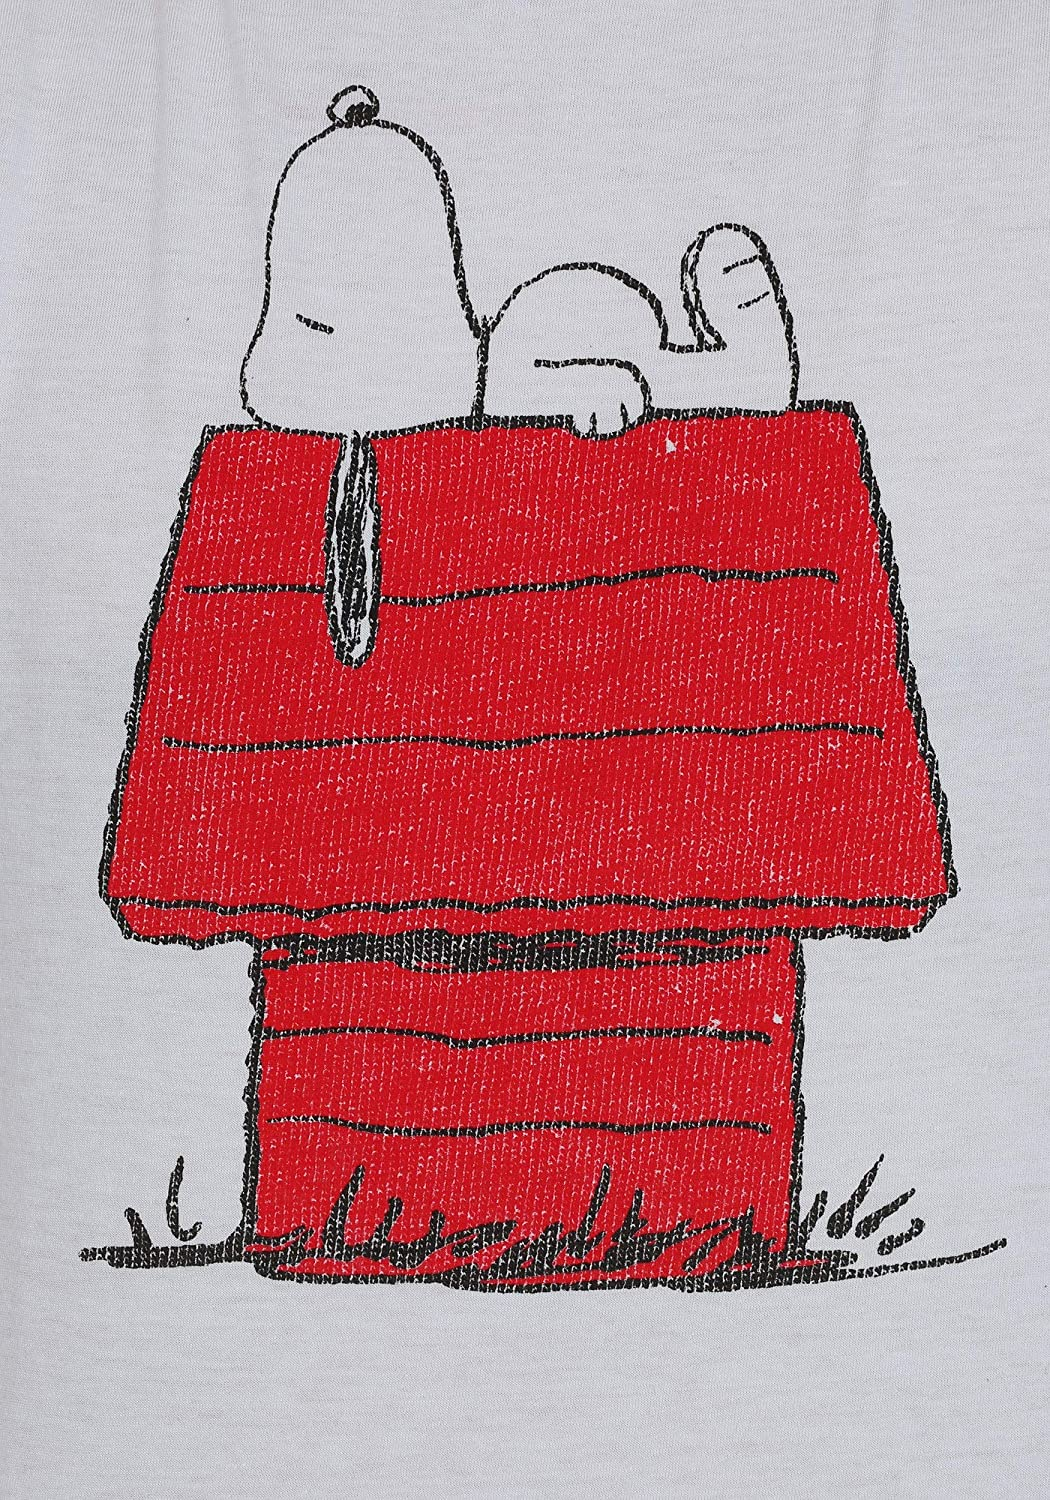 4b624f7c5ca Peanuts snoopy lounging ringer mens shirt small red white clothing jpg  1050x1500 Snoopy lounging